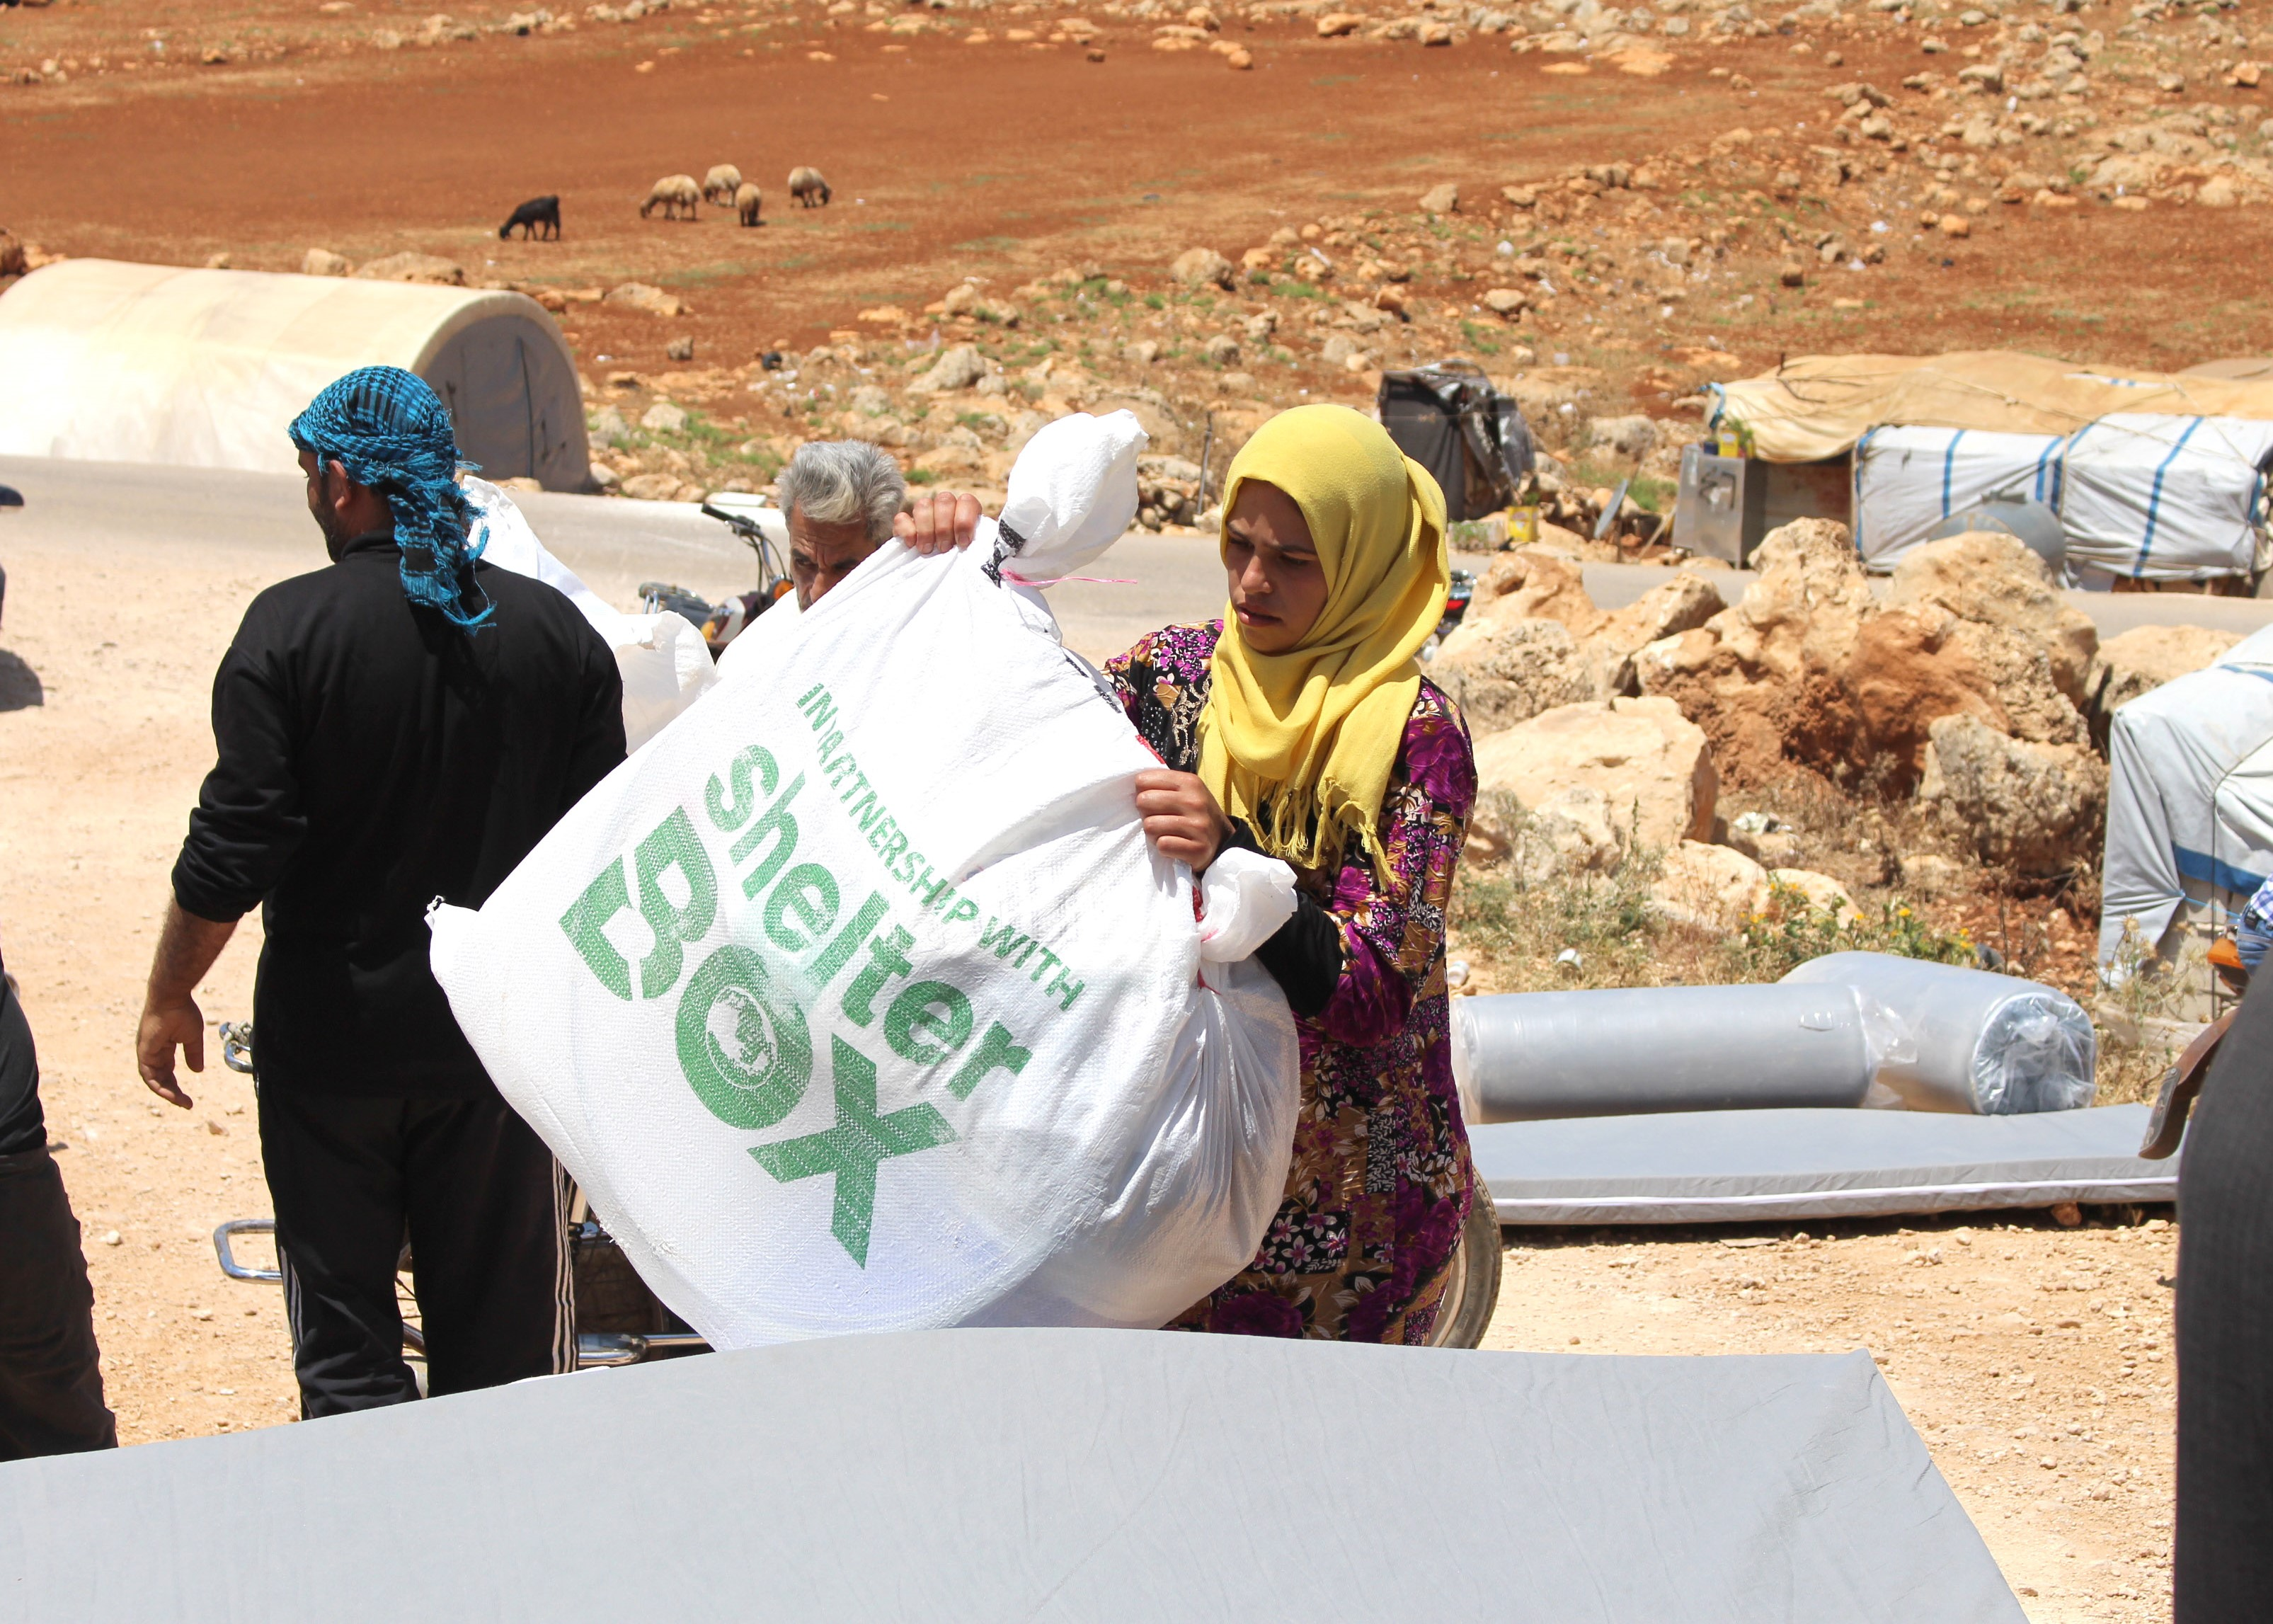 Working quickly to distribute materials in the Syrian desert